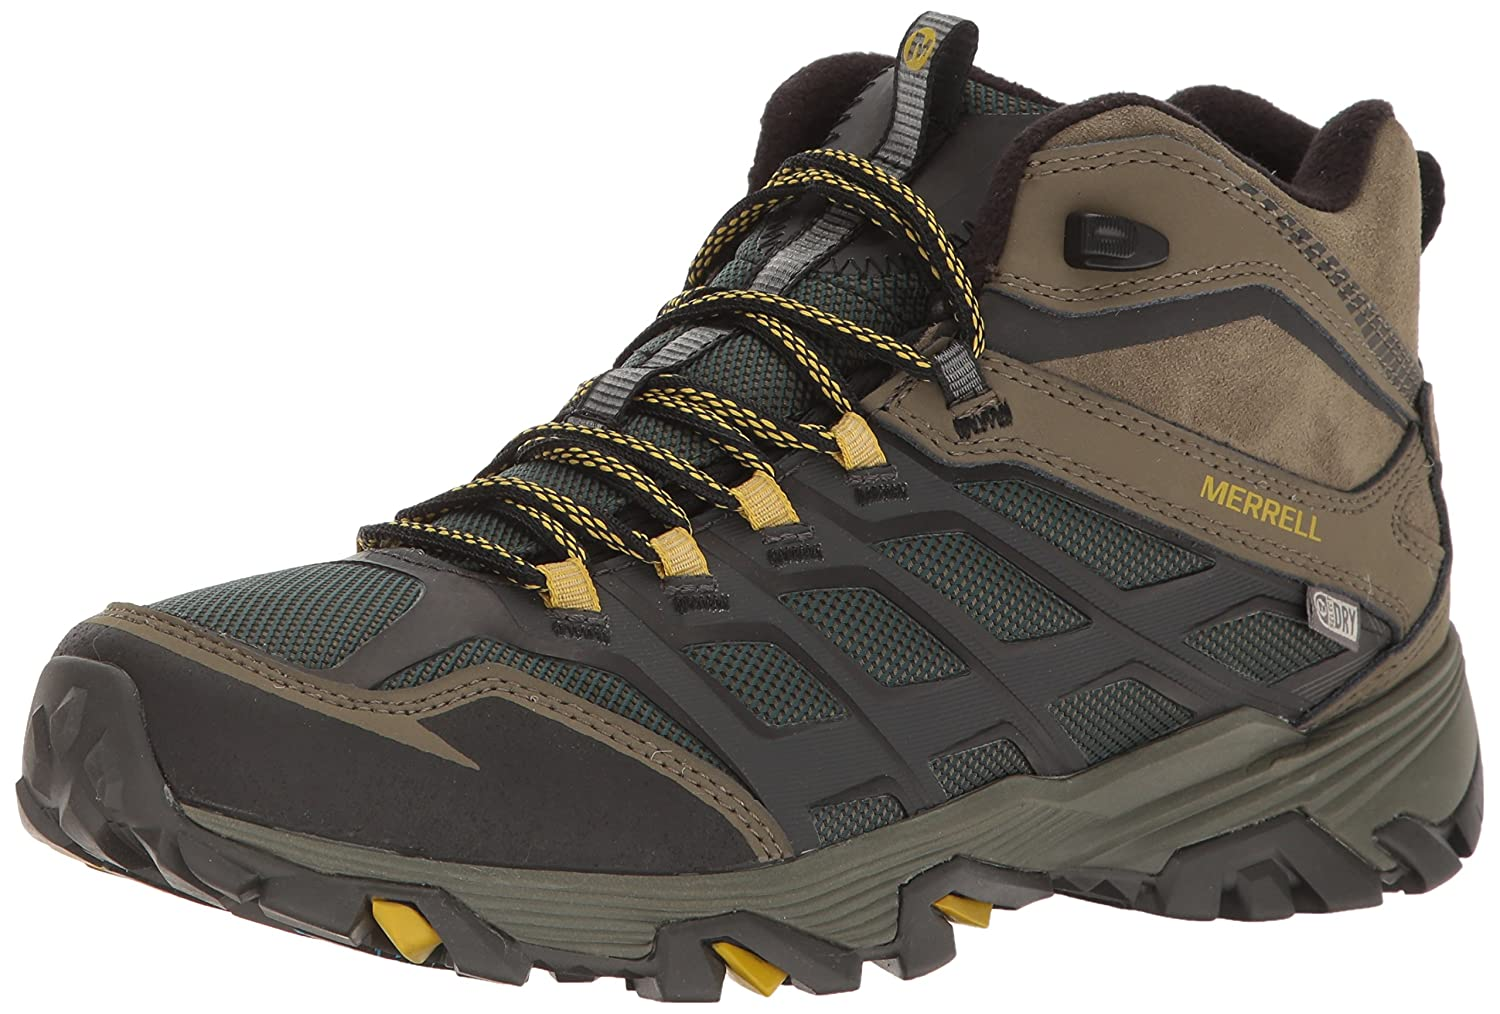 Merrell Men's Moab Fst Ice+ Thermo Hiking Boot Merrell Footwear MOAB FST ICE+ THERMO-M